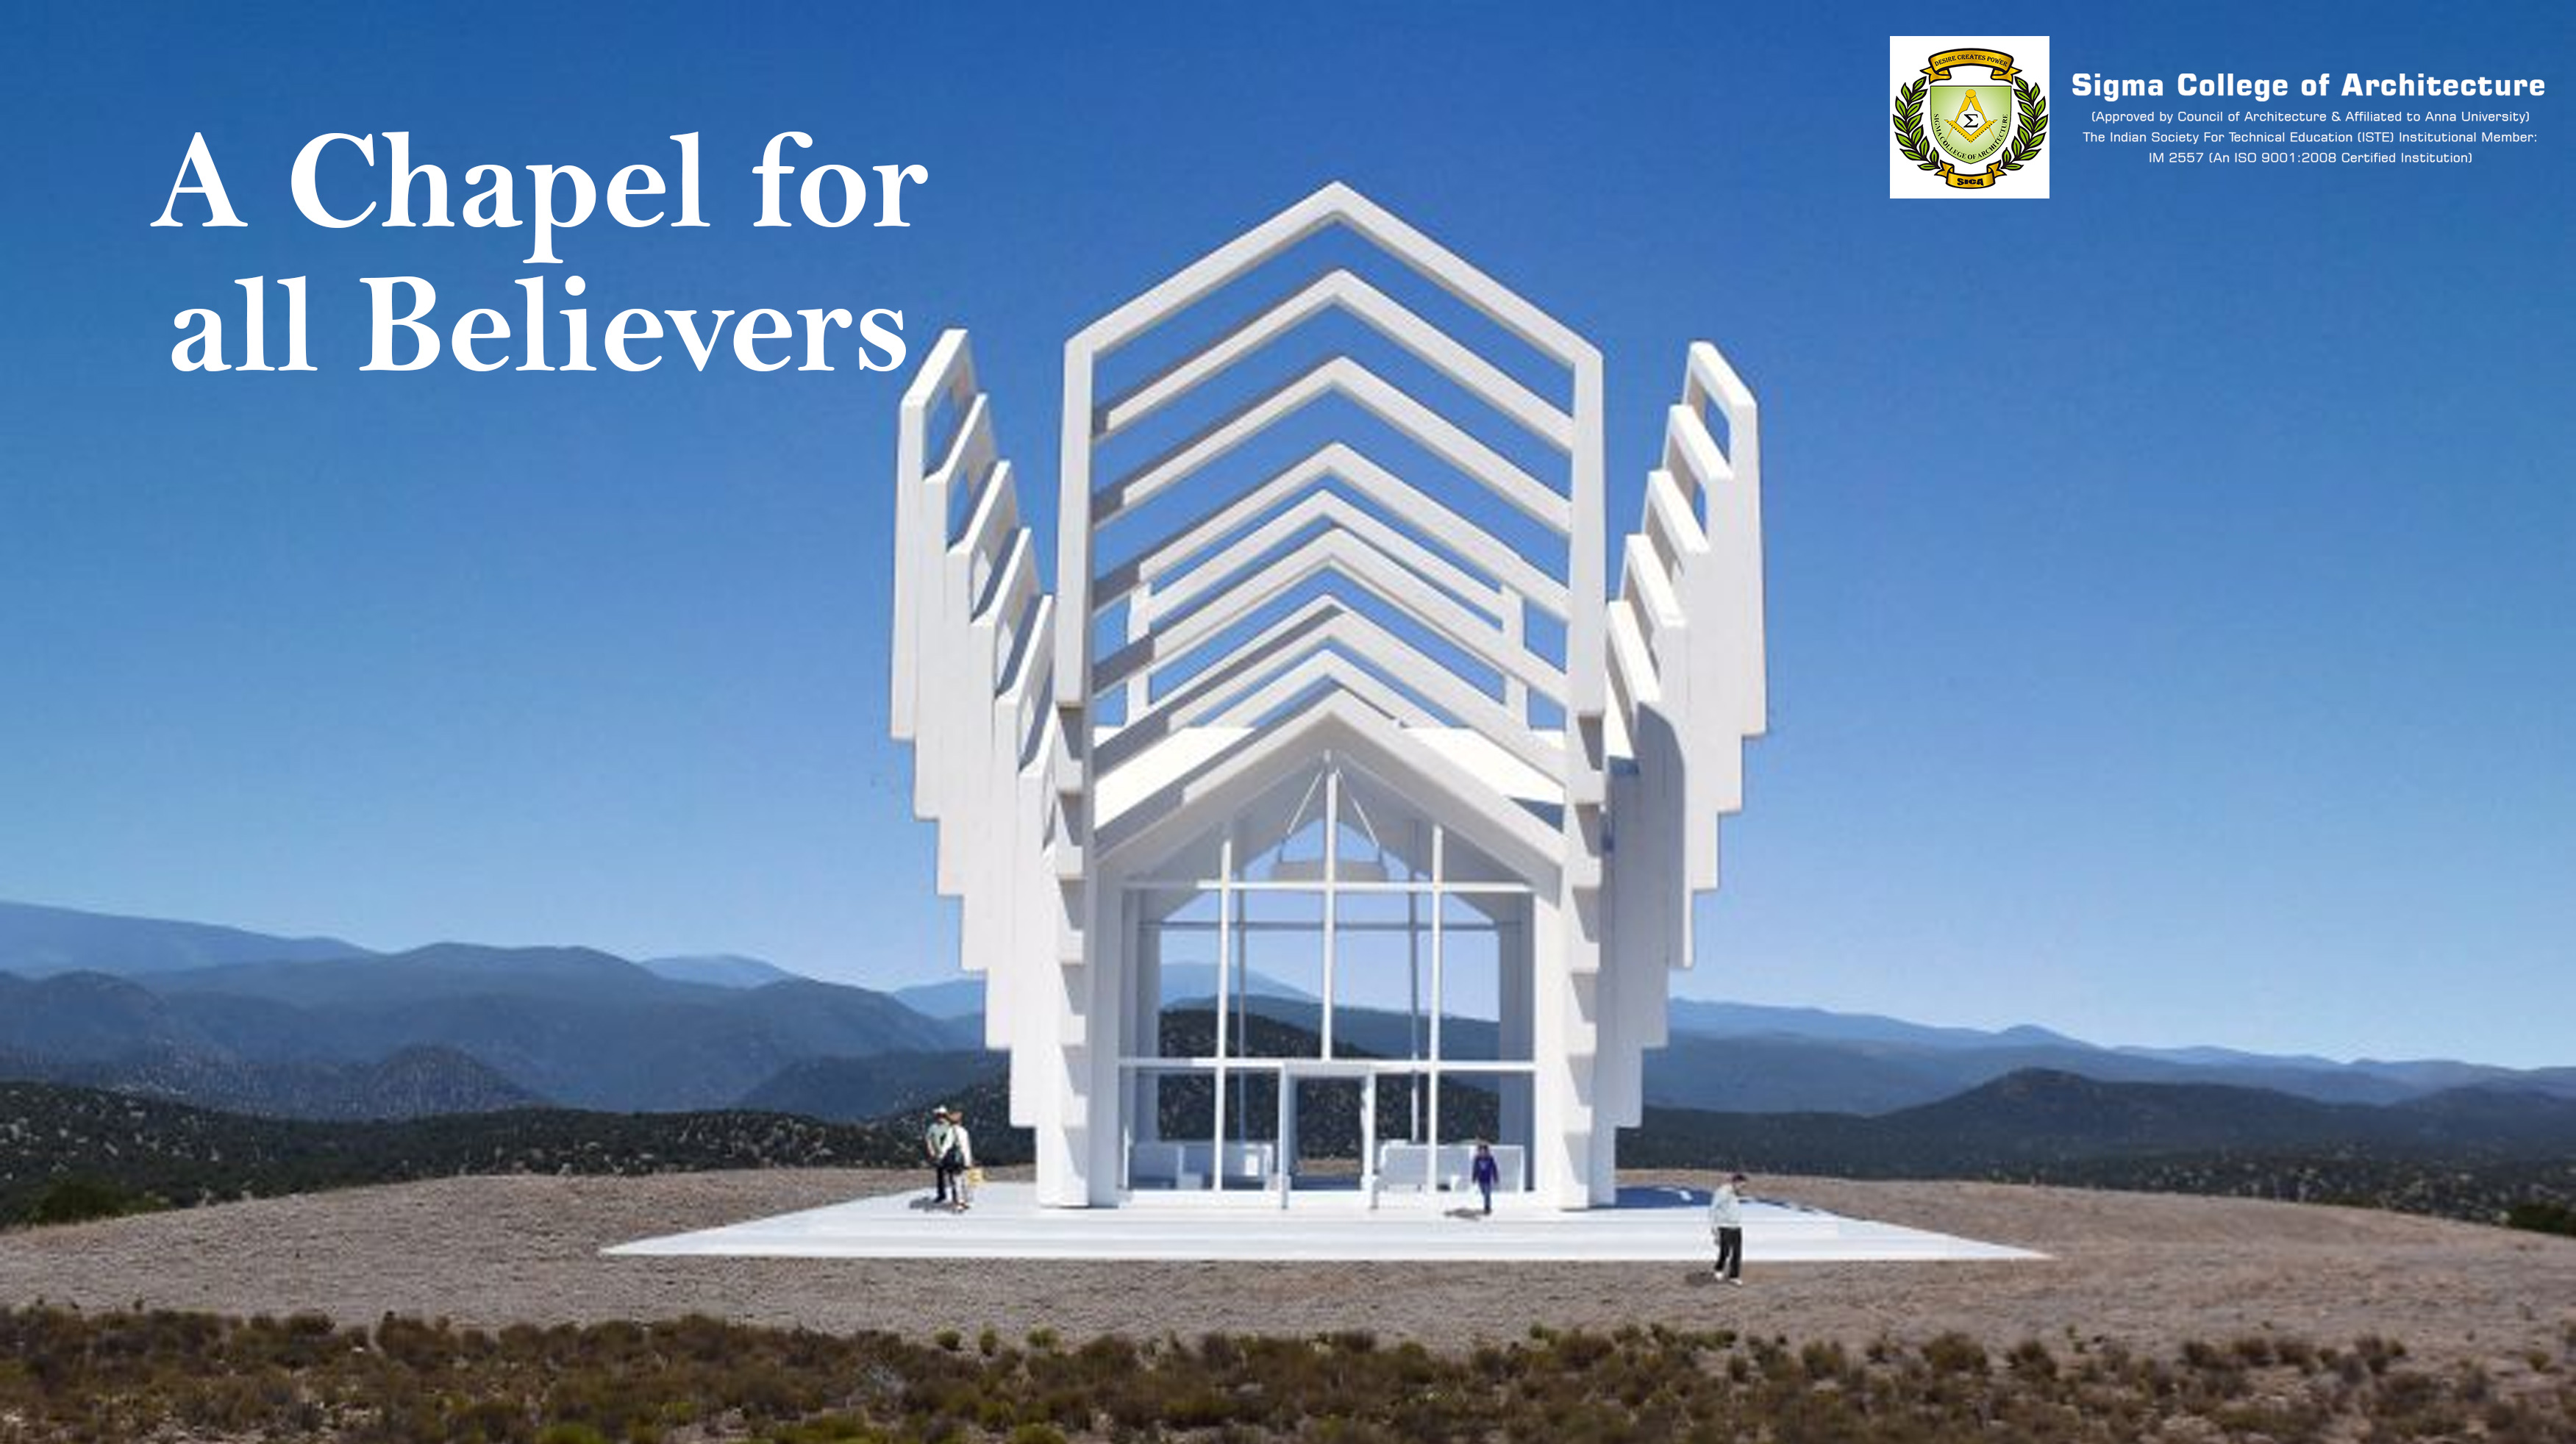 A Chapel for all Believers